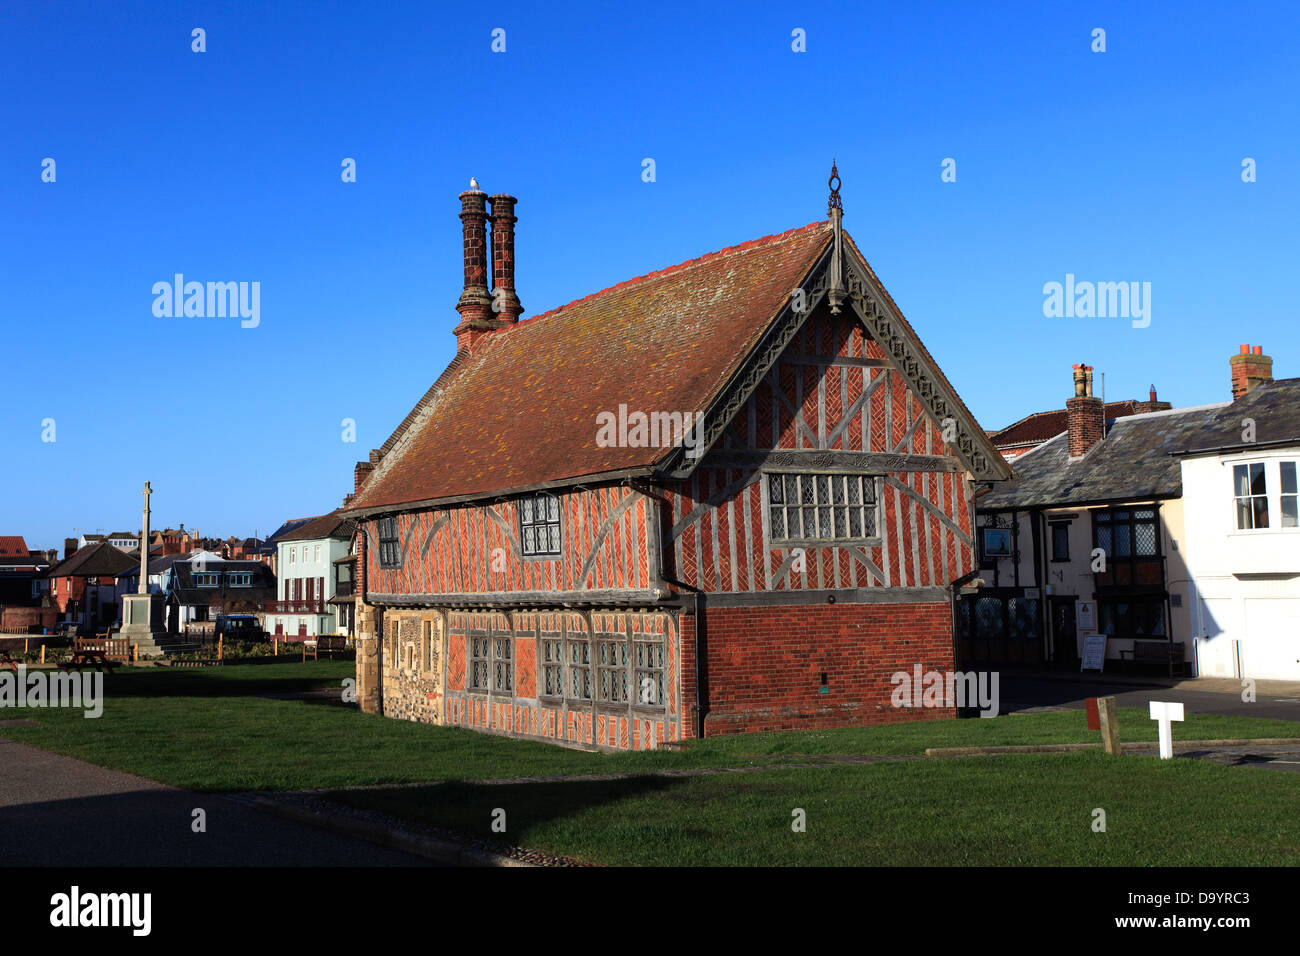 The Moot Hall, half timbered 16th century building museum, Aldeburgh town, Suffolk County, East Anglia, England. - Stock Image